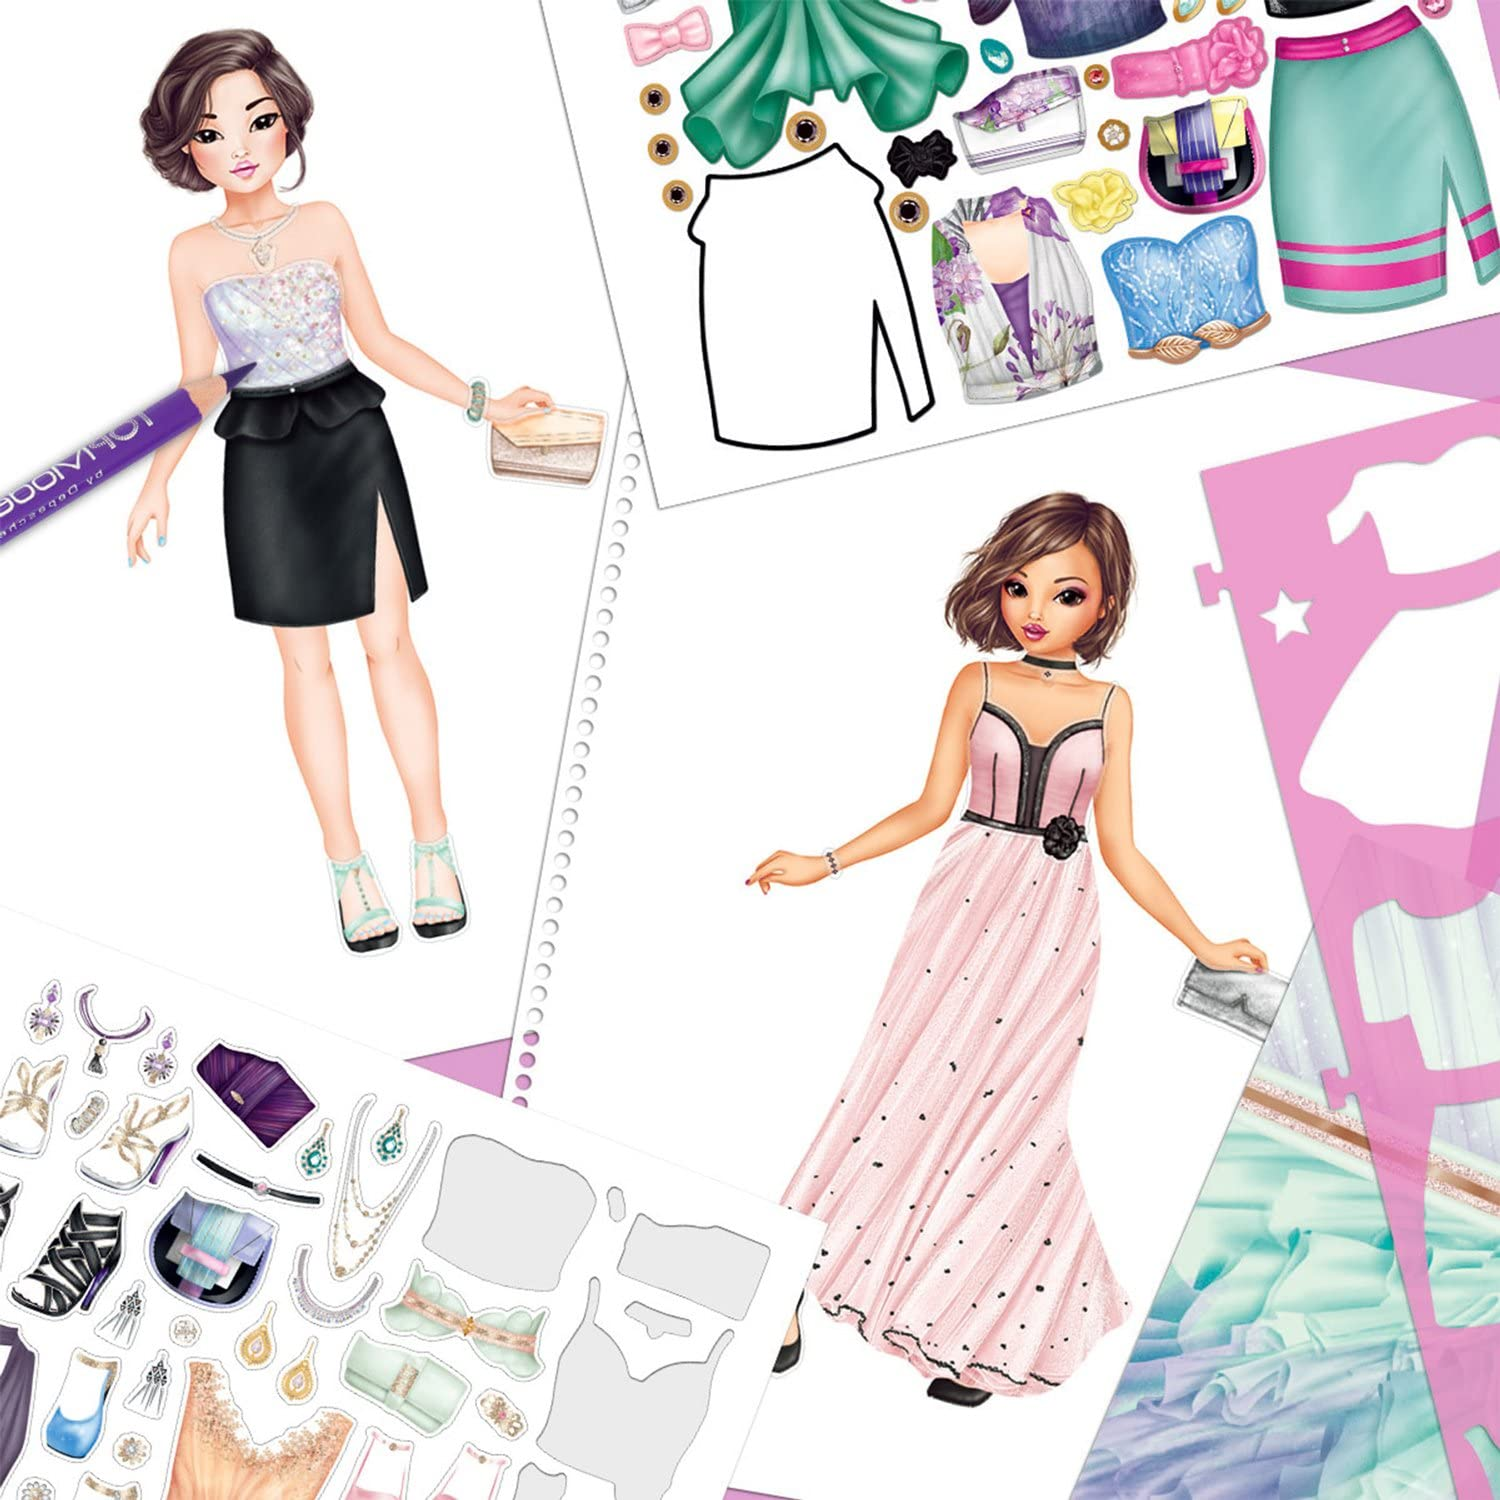 783 NEW Details about  /Top Model Create your Glamour Special Colouring